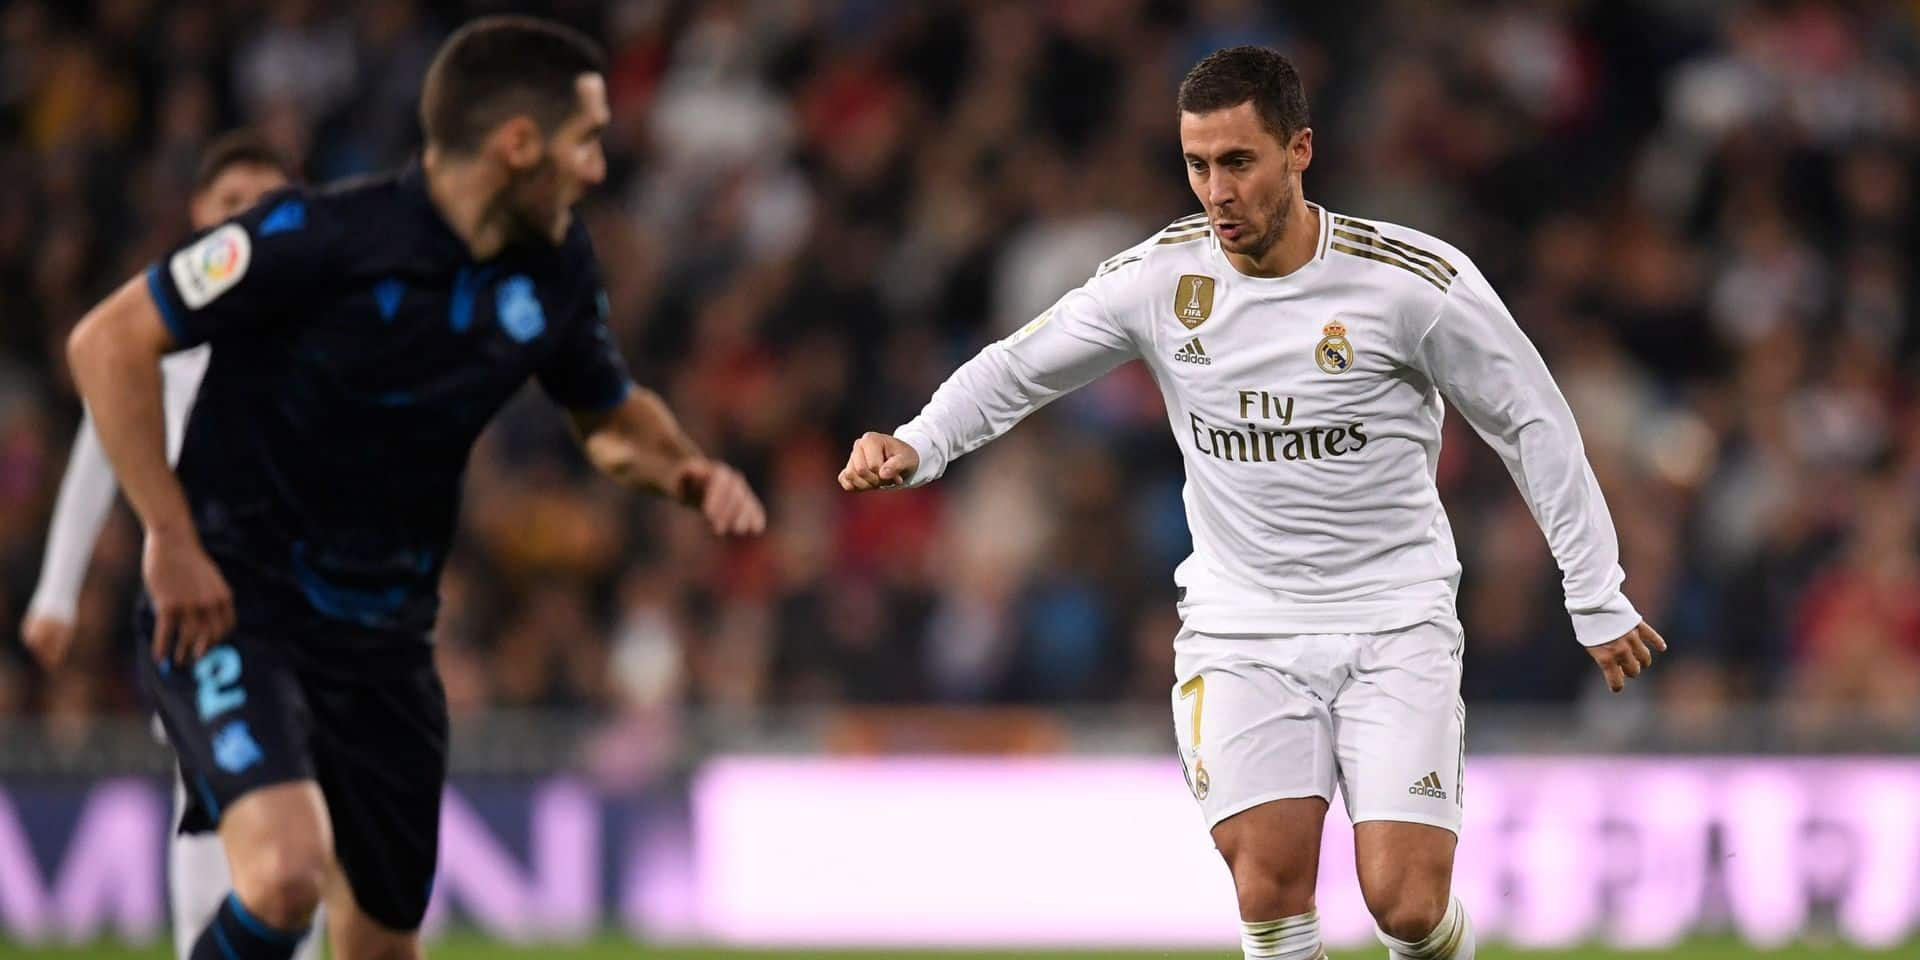 Il n'a fallu que 14 matches à Hazard pour battre un joli record au Real Madrid